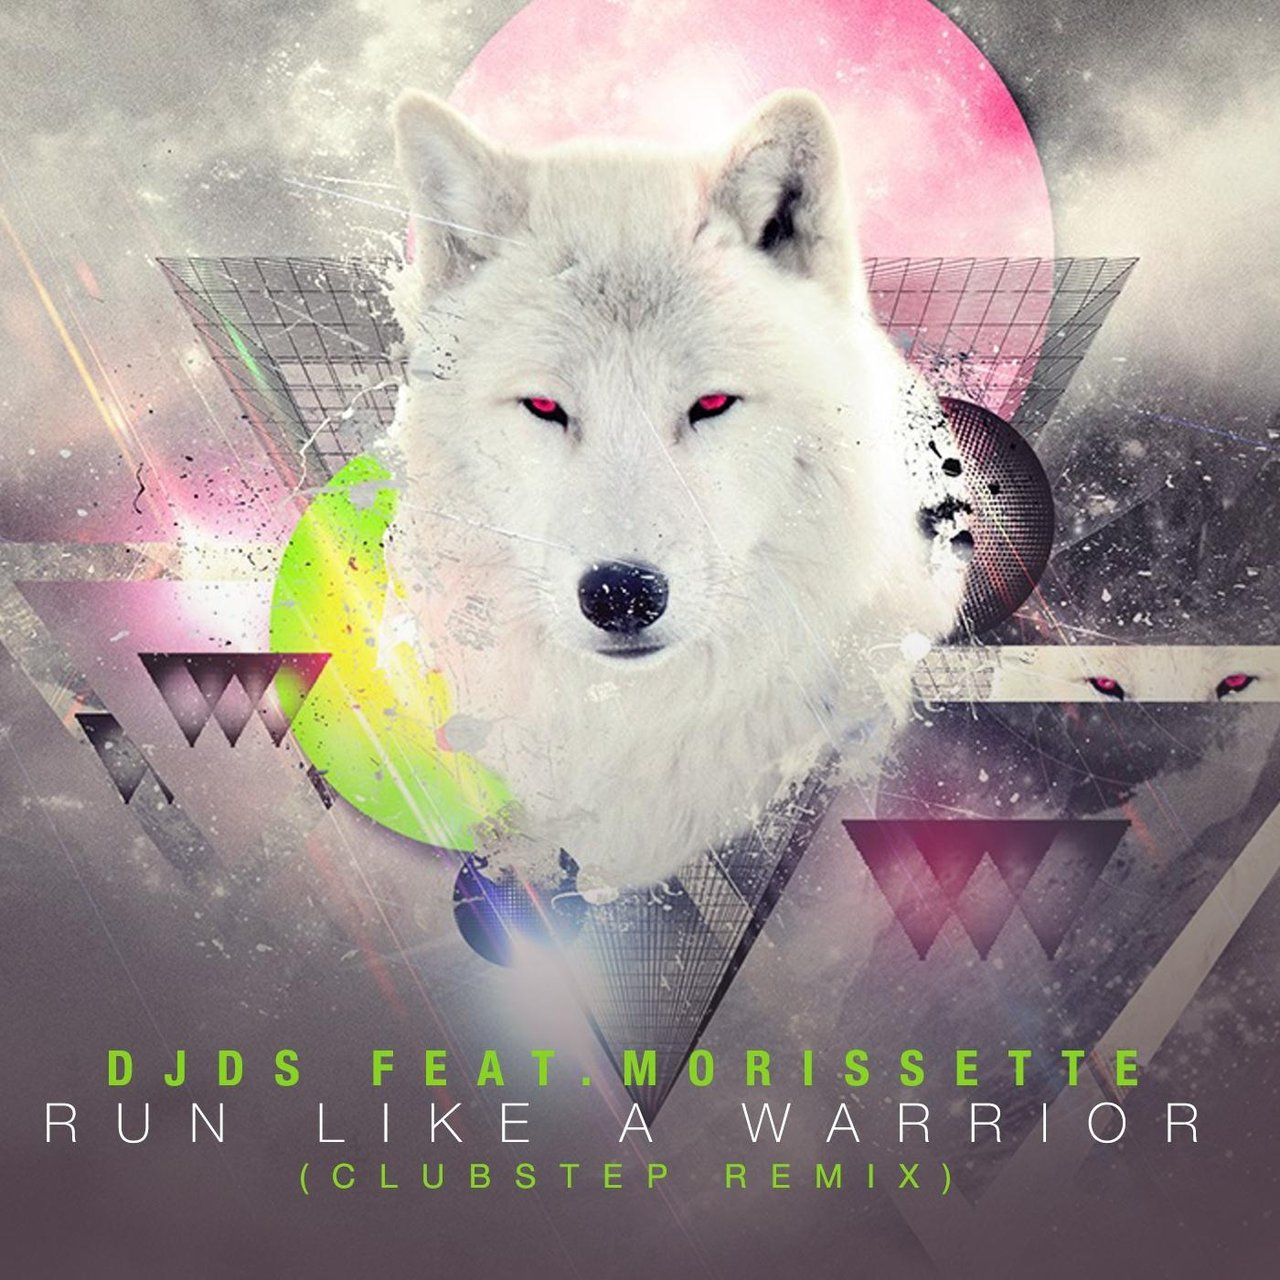 Run Like a Warrior (Clubstep Remix) [feat. Morissette]